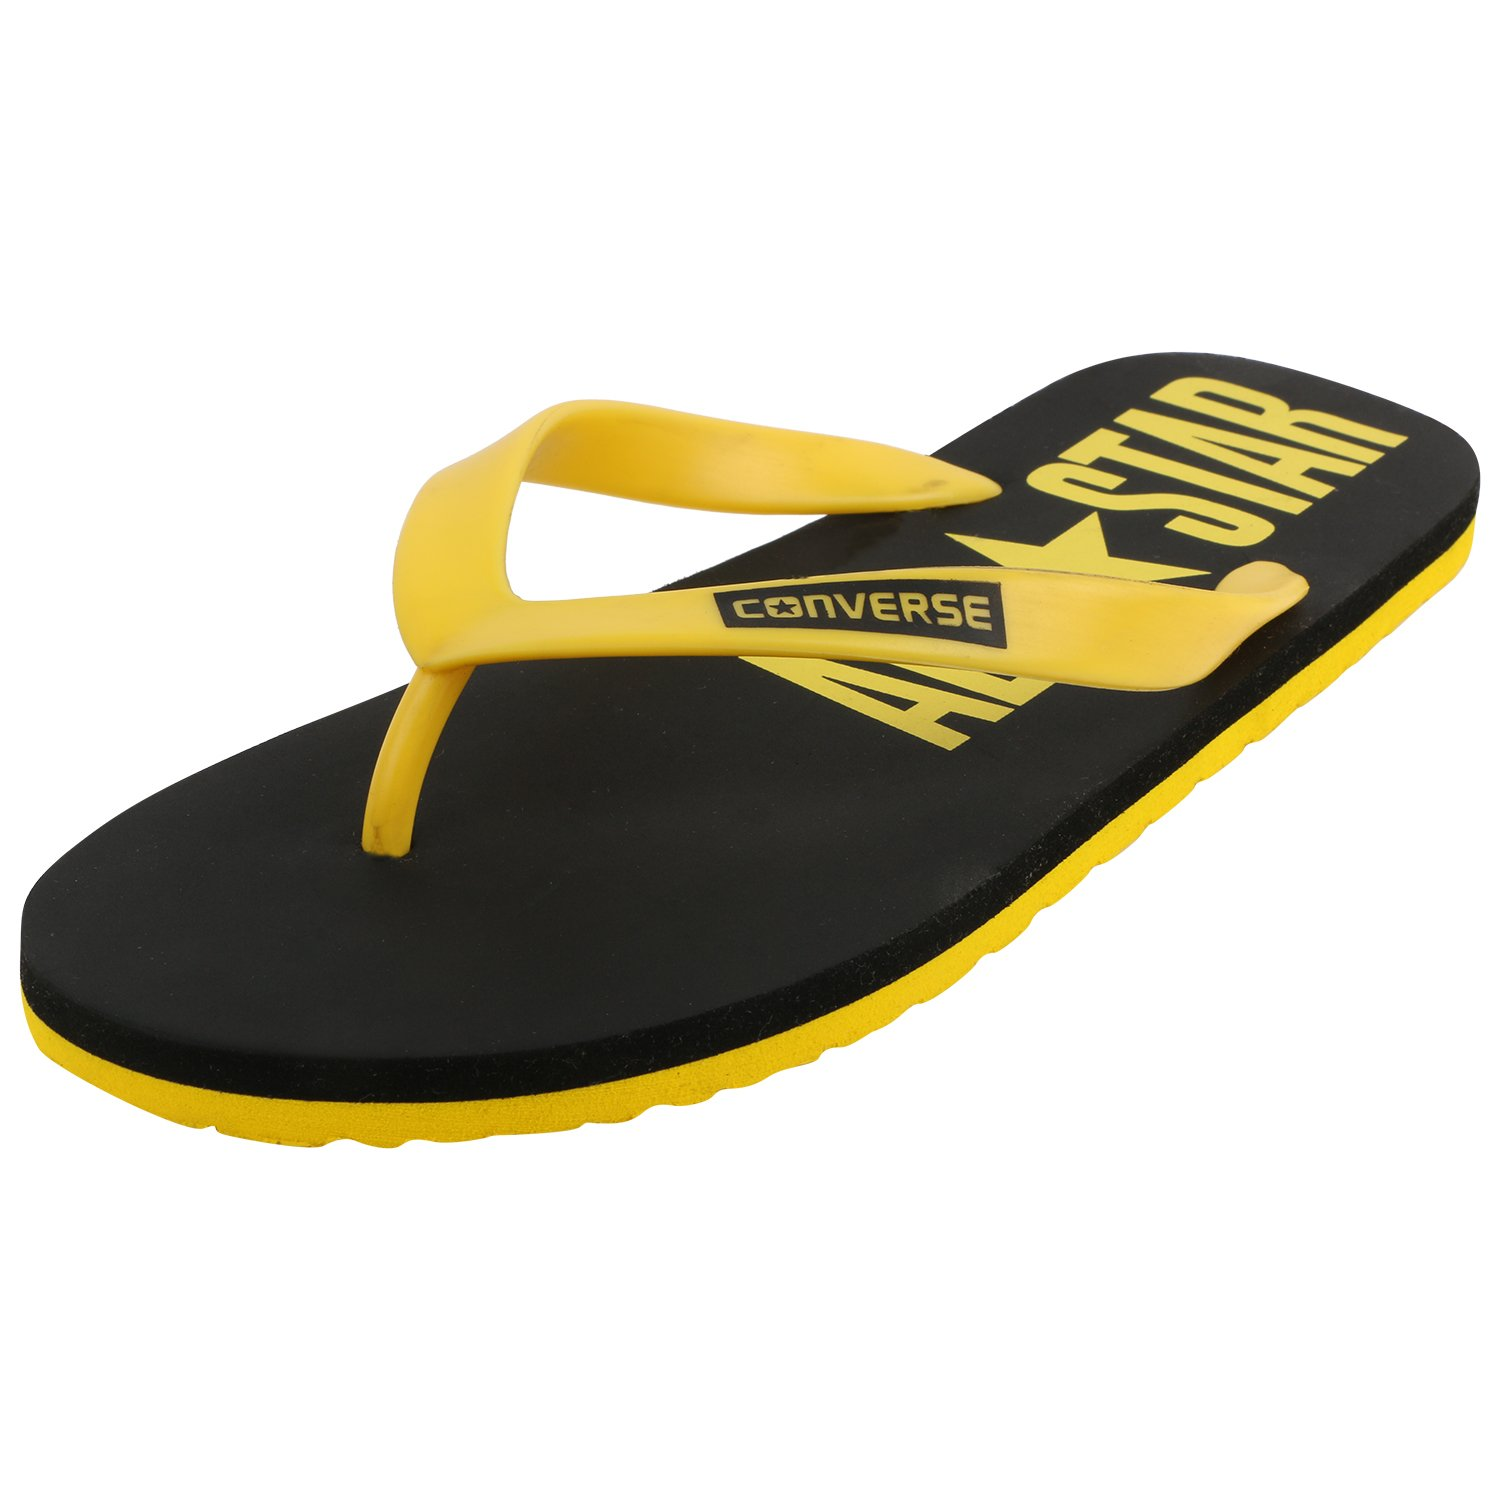 9b001d91c40a68 Converse Men s Black Yellow Flip-Flops and House Slippers - 10 UK India (44  EU)  Buy Online at Low Prices in India - Amazon.in